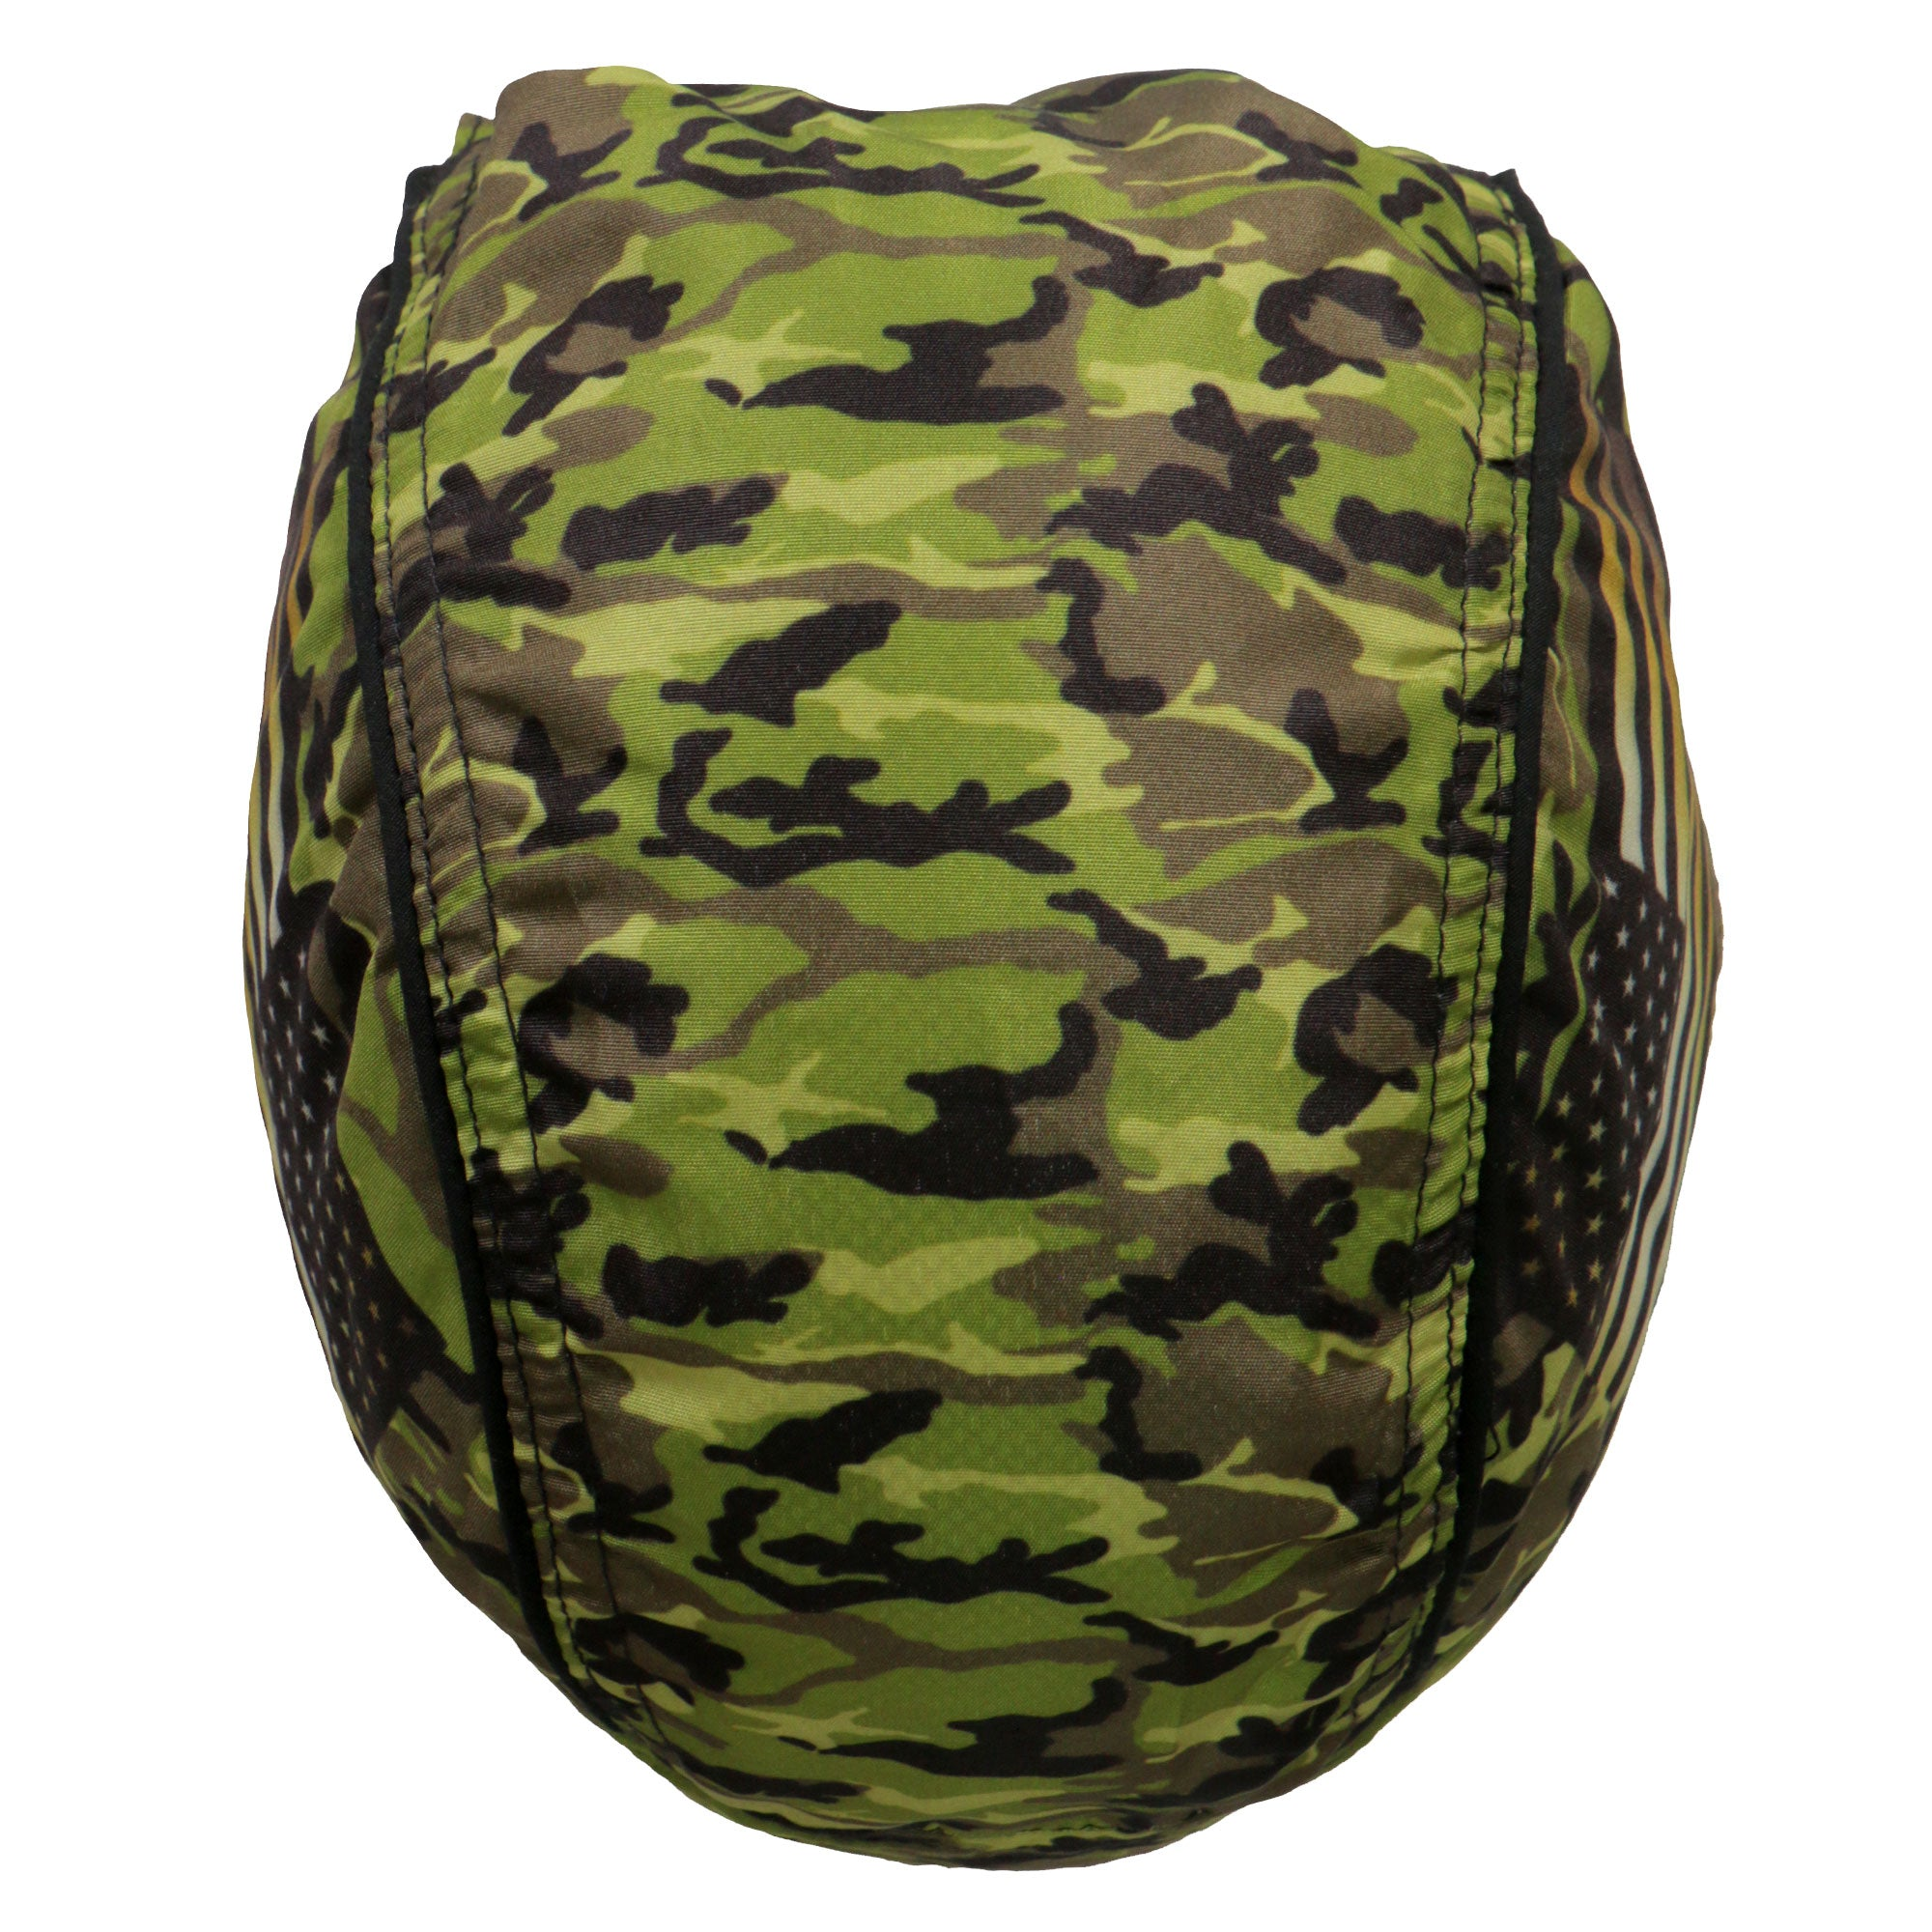 Hot leathers Camo Flag Headwrap